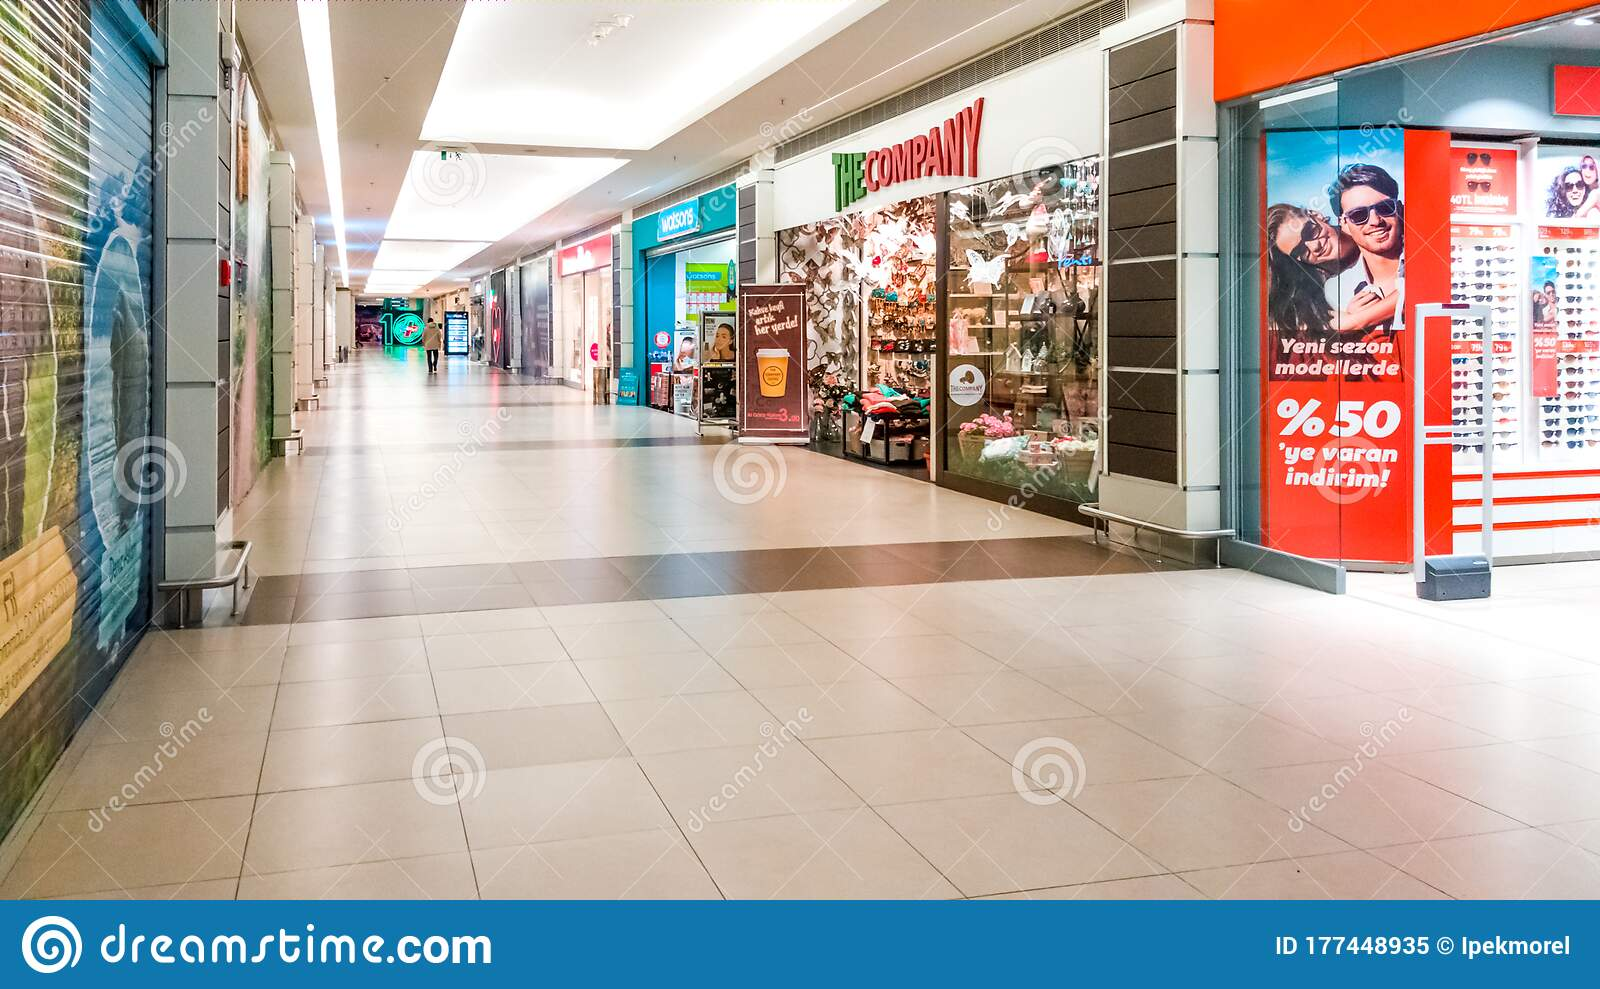 Interior View Of A Shopping Mall In Eskisehir. Turkey Editorial Image - Image of glasses. horizontal: 177448935